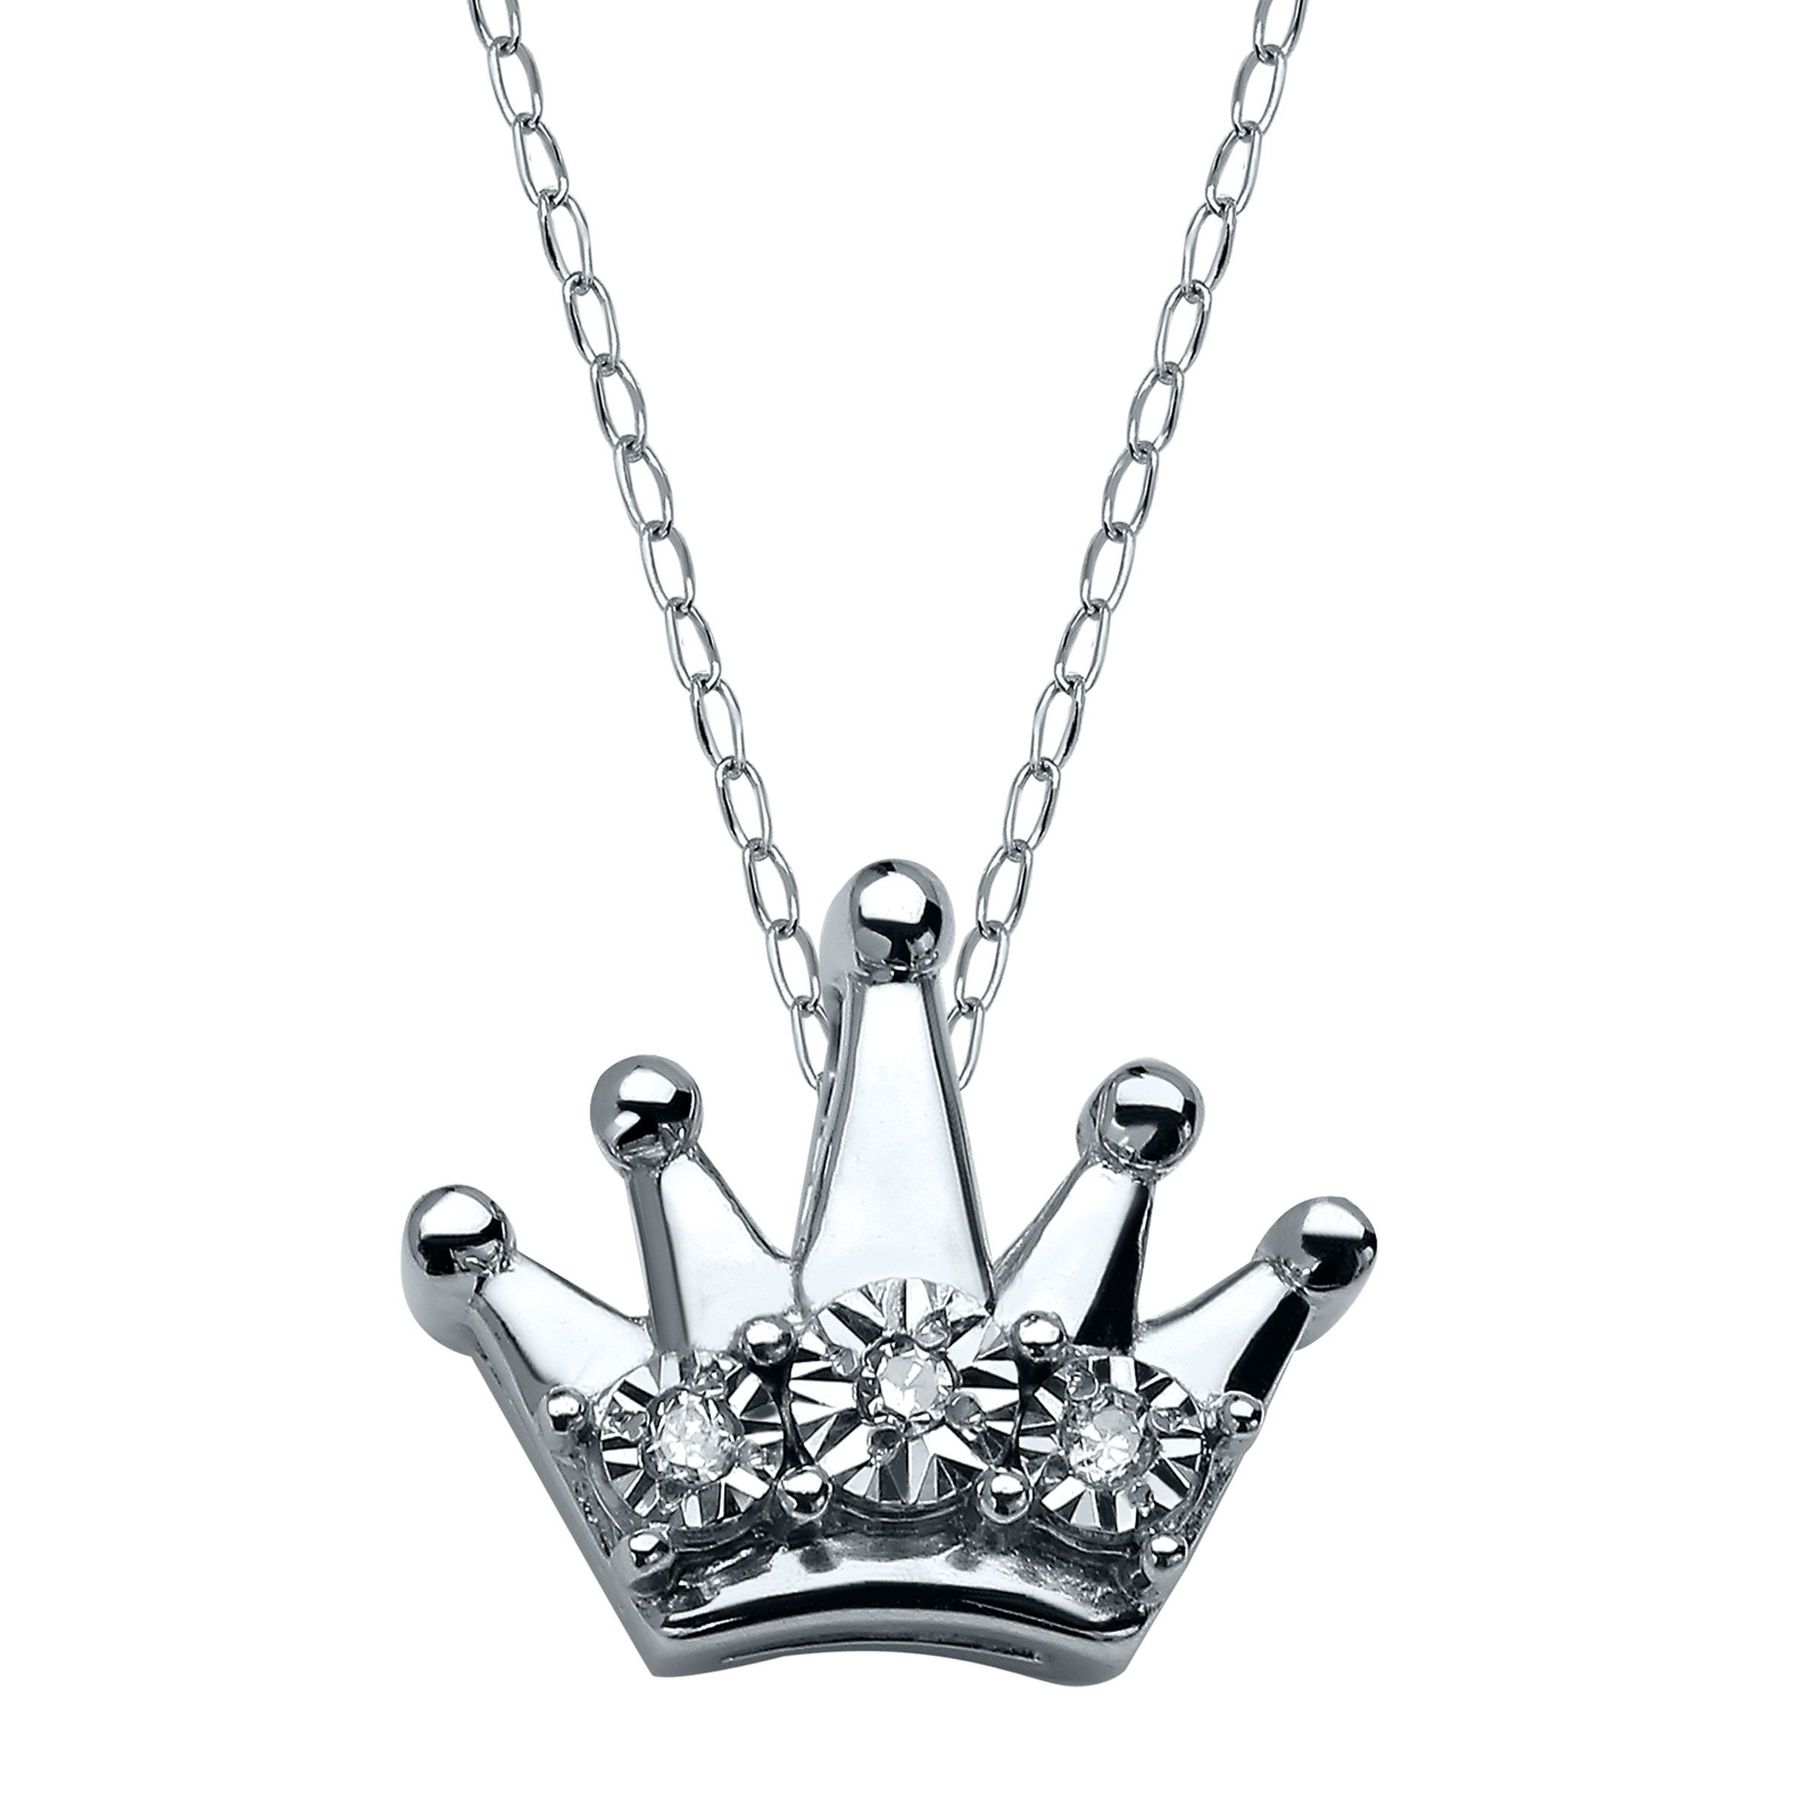 crown turkish product jewelry buy detail necklace wholesale charm minimal pendant sterling silver on